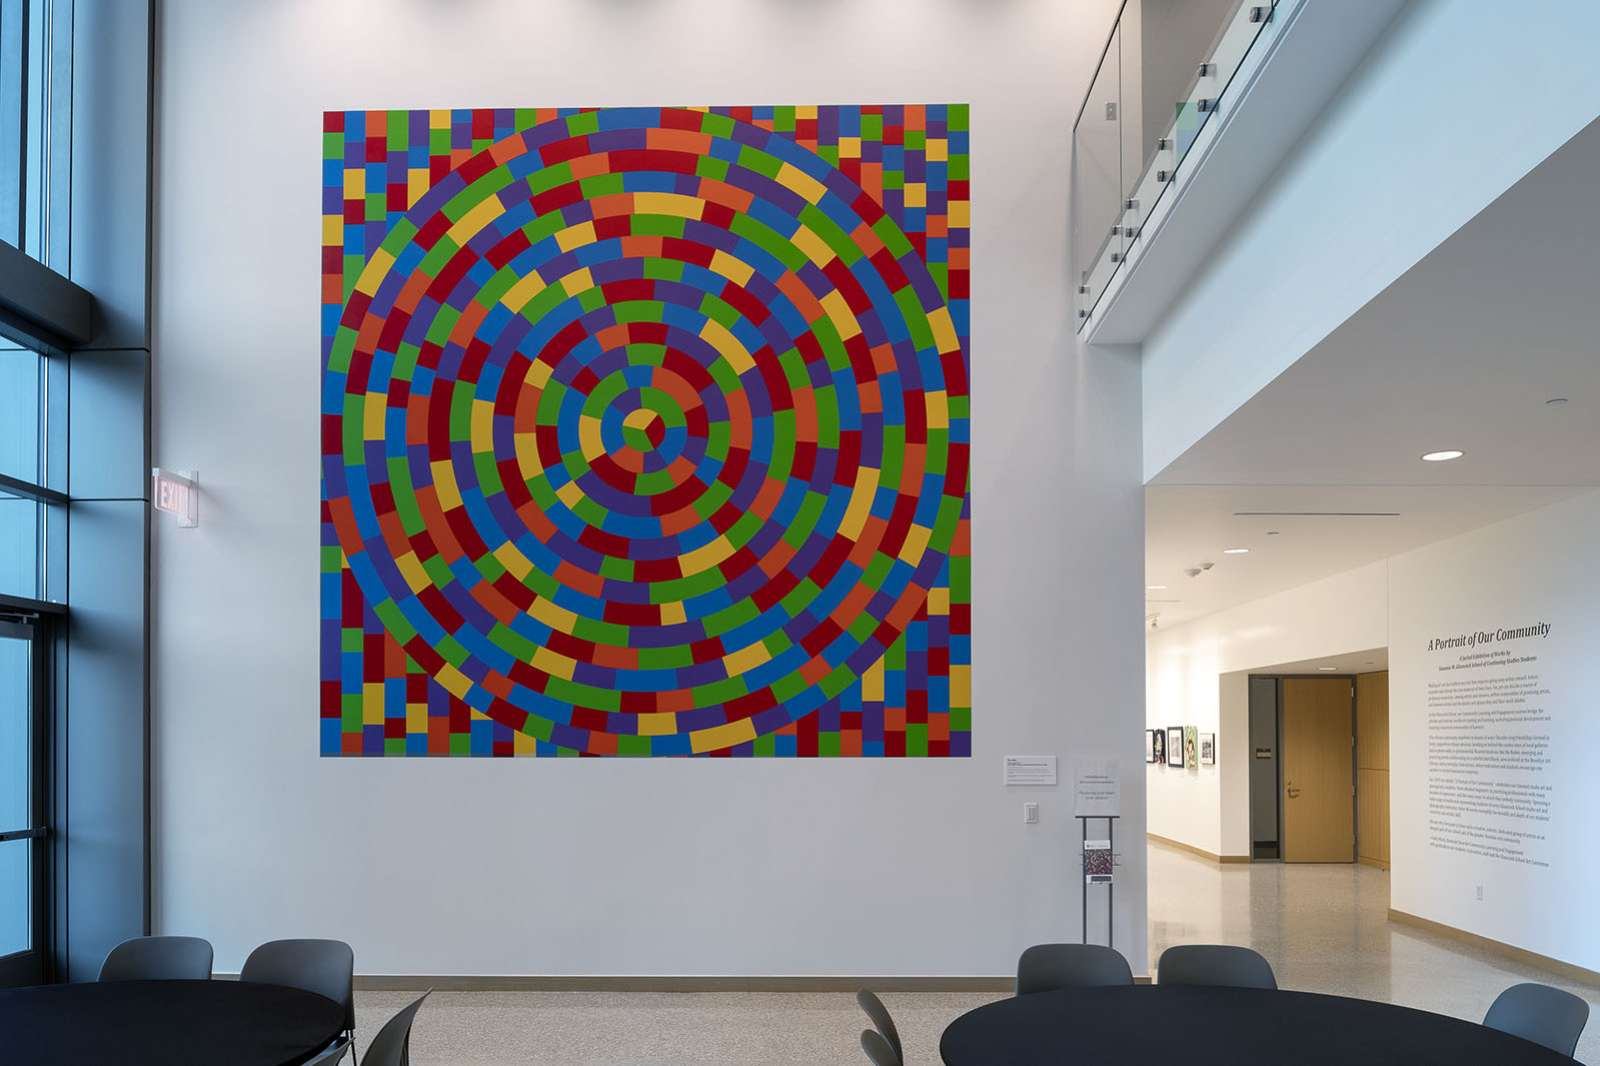 Sol LeWitt, Wall Drawing #1115: Circle within a square, each with broken bands of color, 2014, Acrylic paint, dimensions variable. Gift of Russell H. Pitman. © Estate of Sol LeWitt / Artists Rights Society (ARS), New York. Photo by Nash Baker.